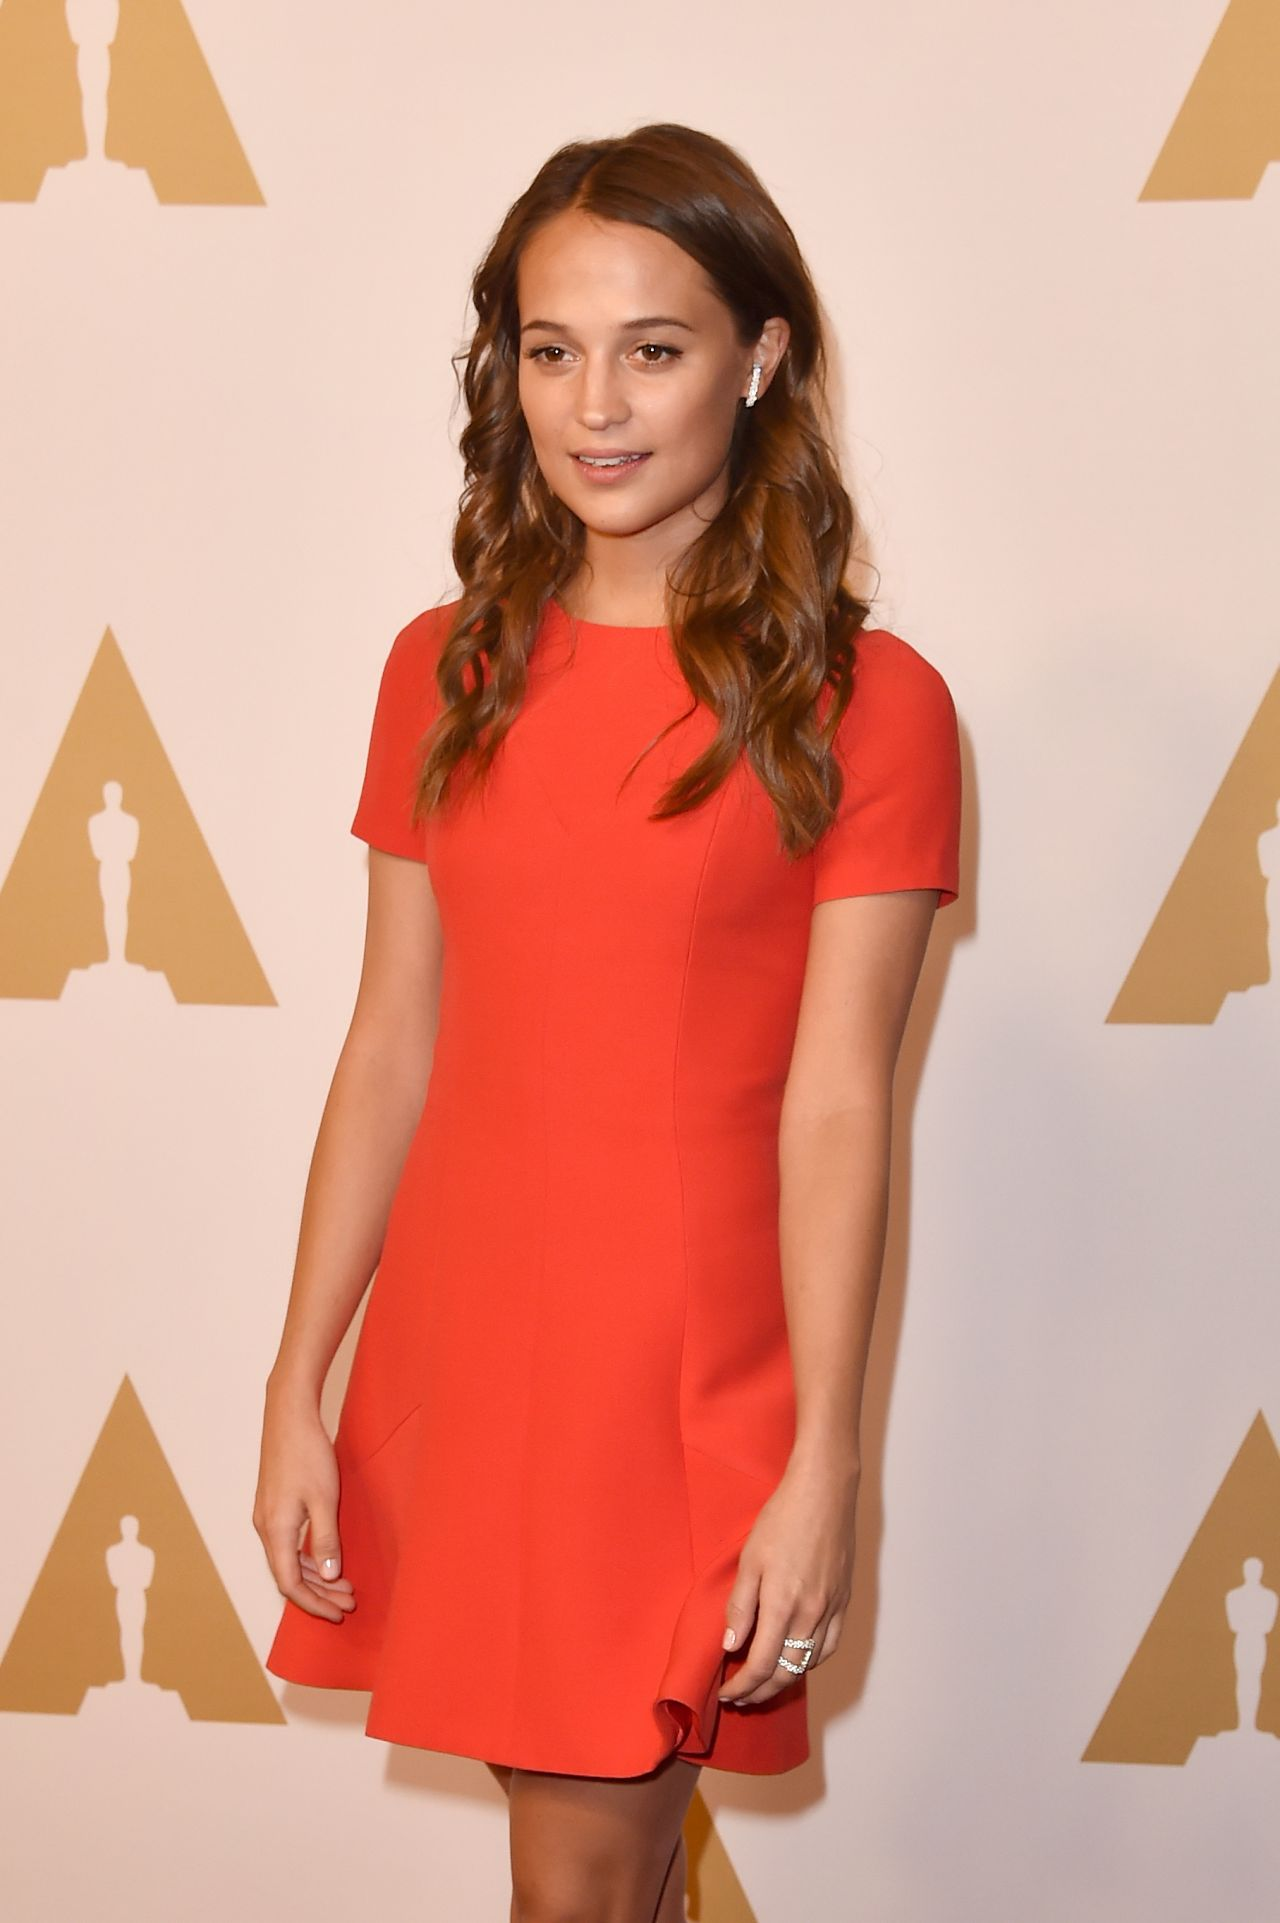 alicia-vikander-88th-annual-academy-awards-nominee-luncheon-in-beverly-hills-ca-5